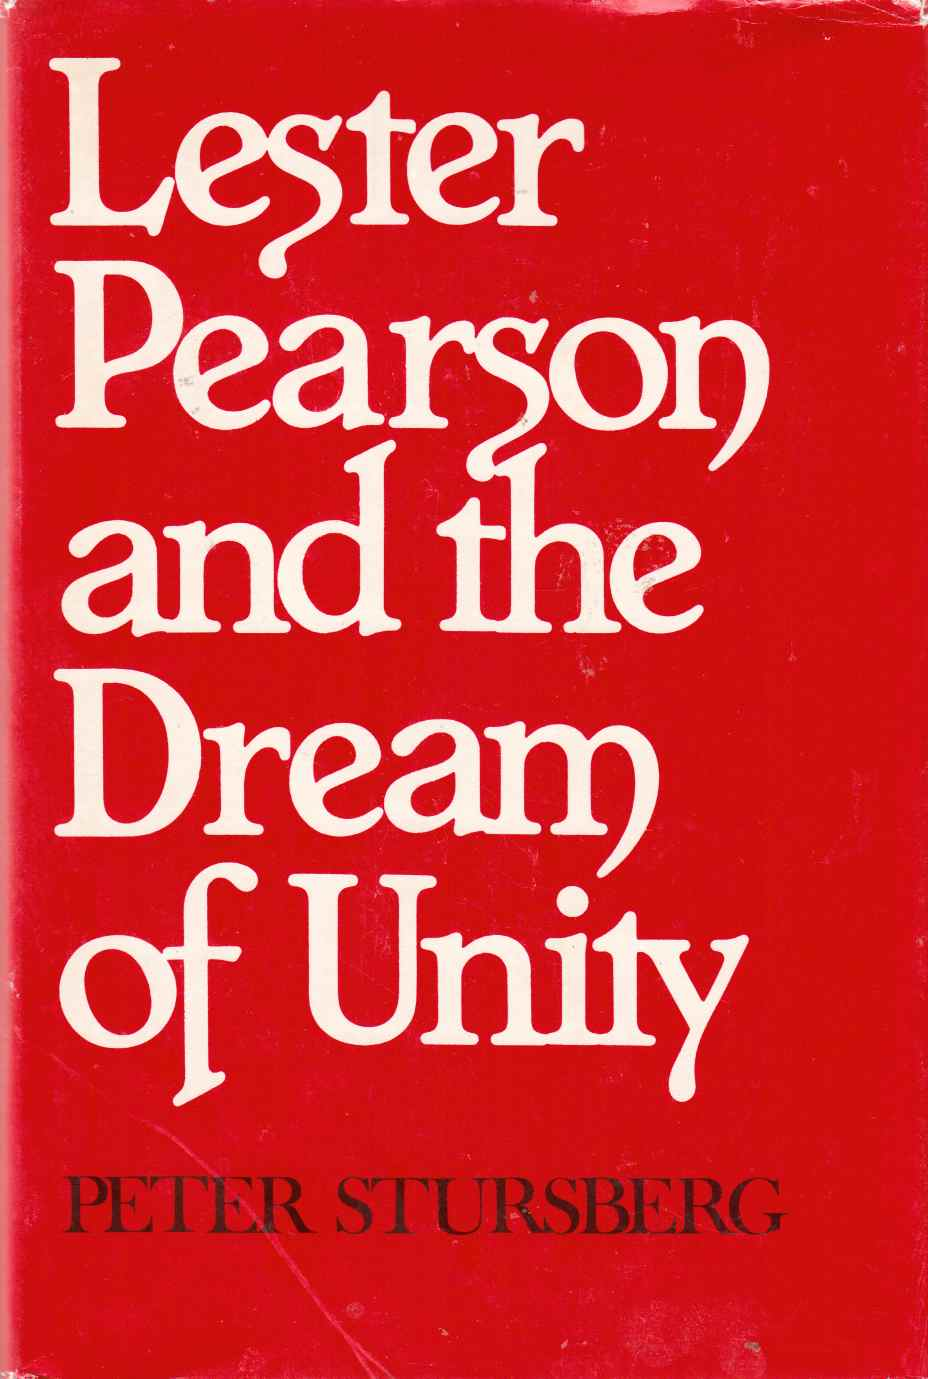 Image for Lester Pearson and the Dream of Unity